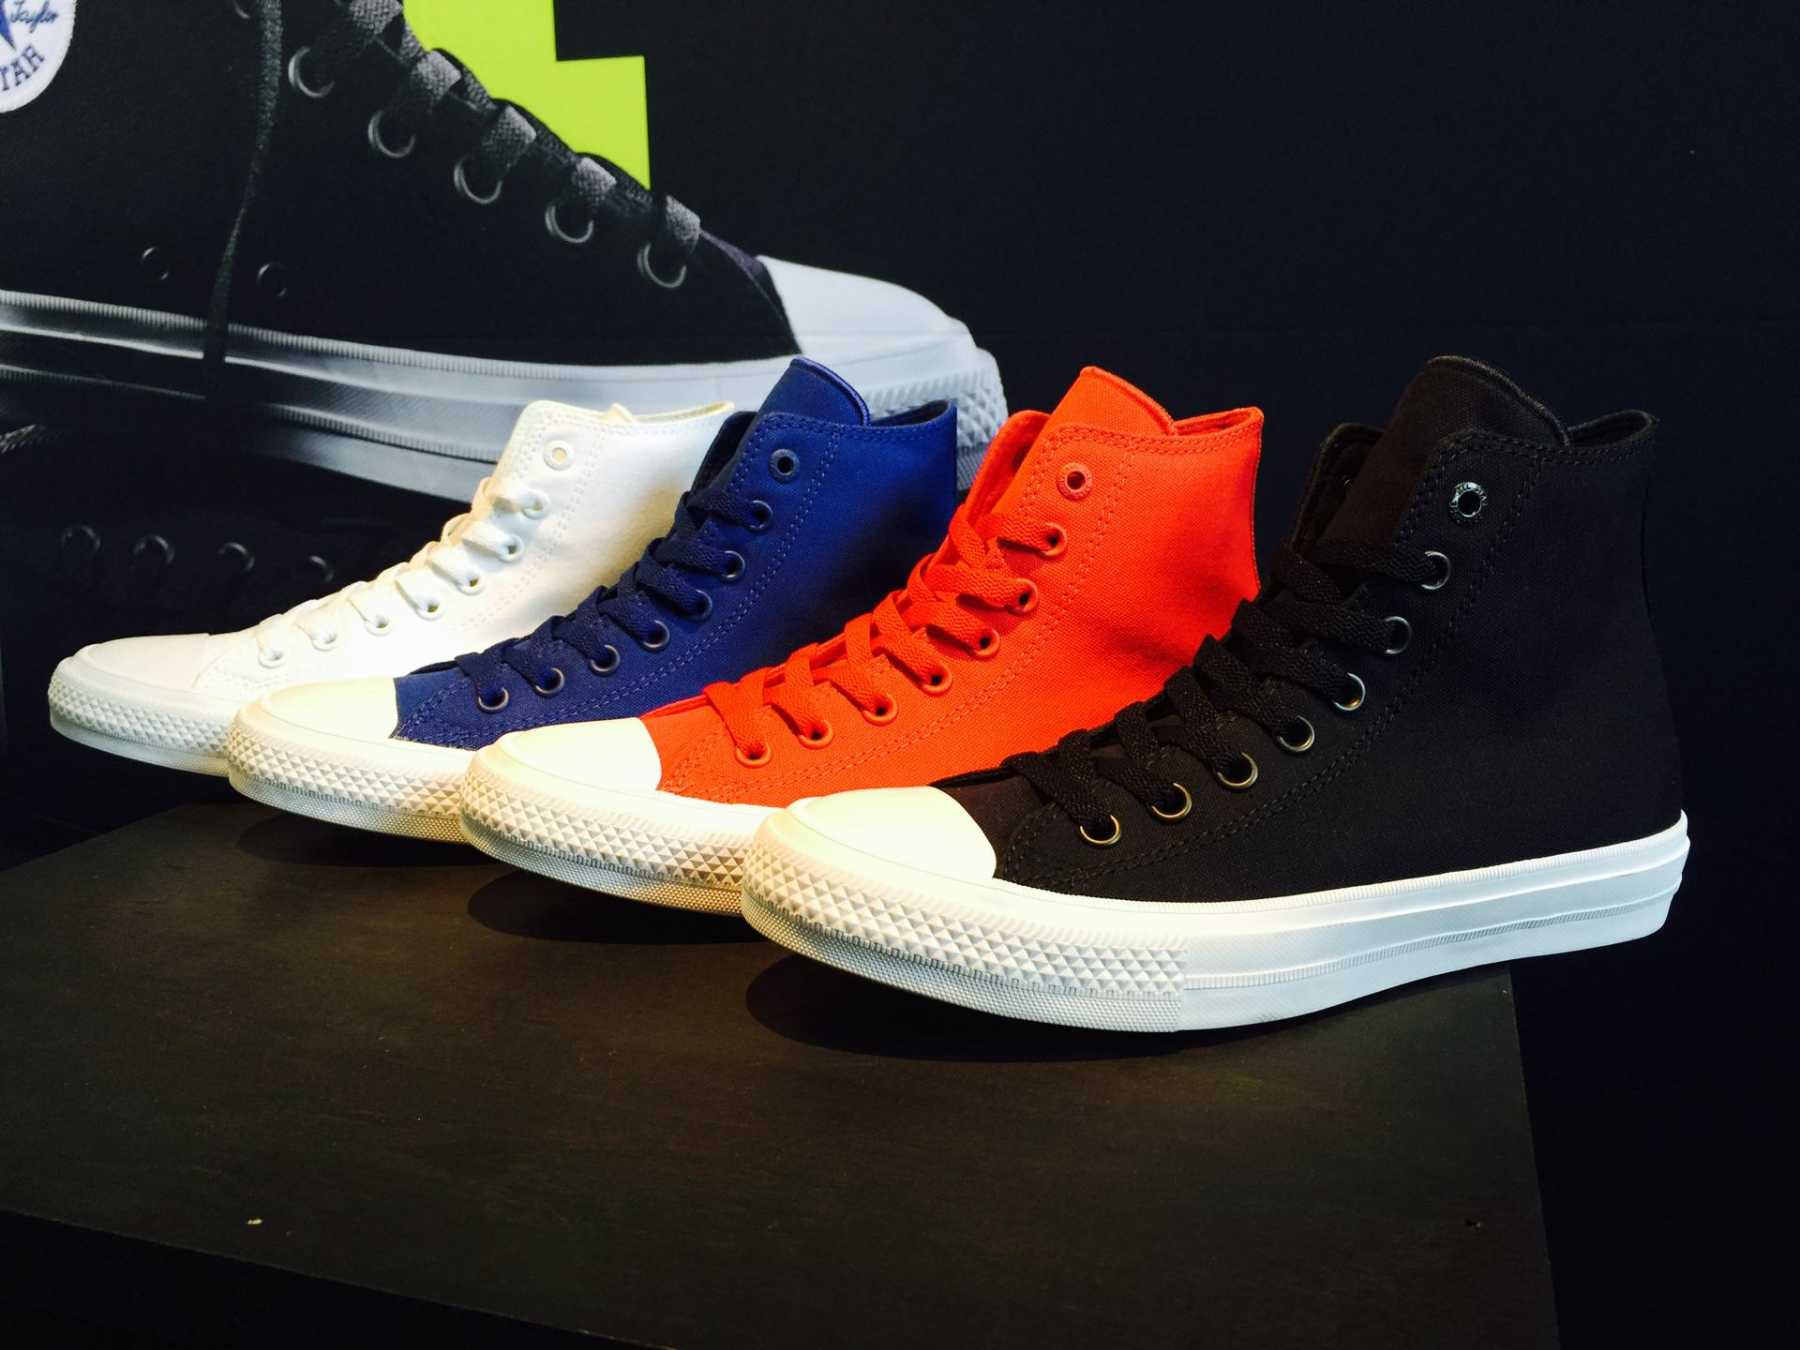 Converse Chucks Get A Facelift After 98 Years | Converse